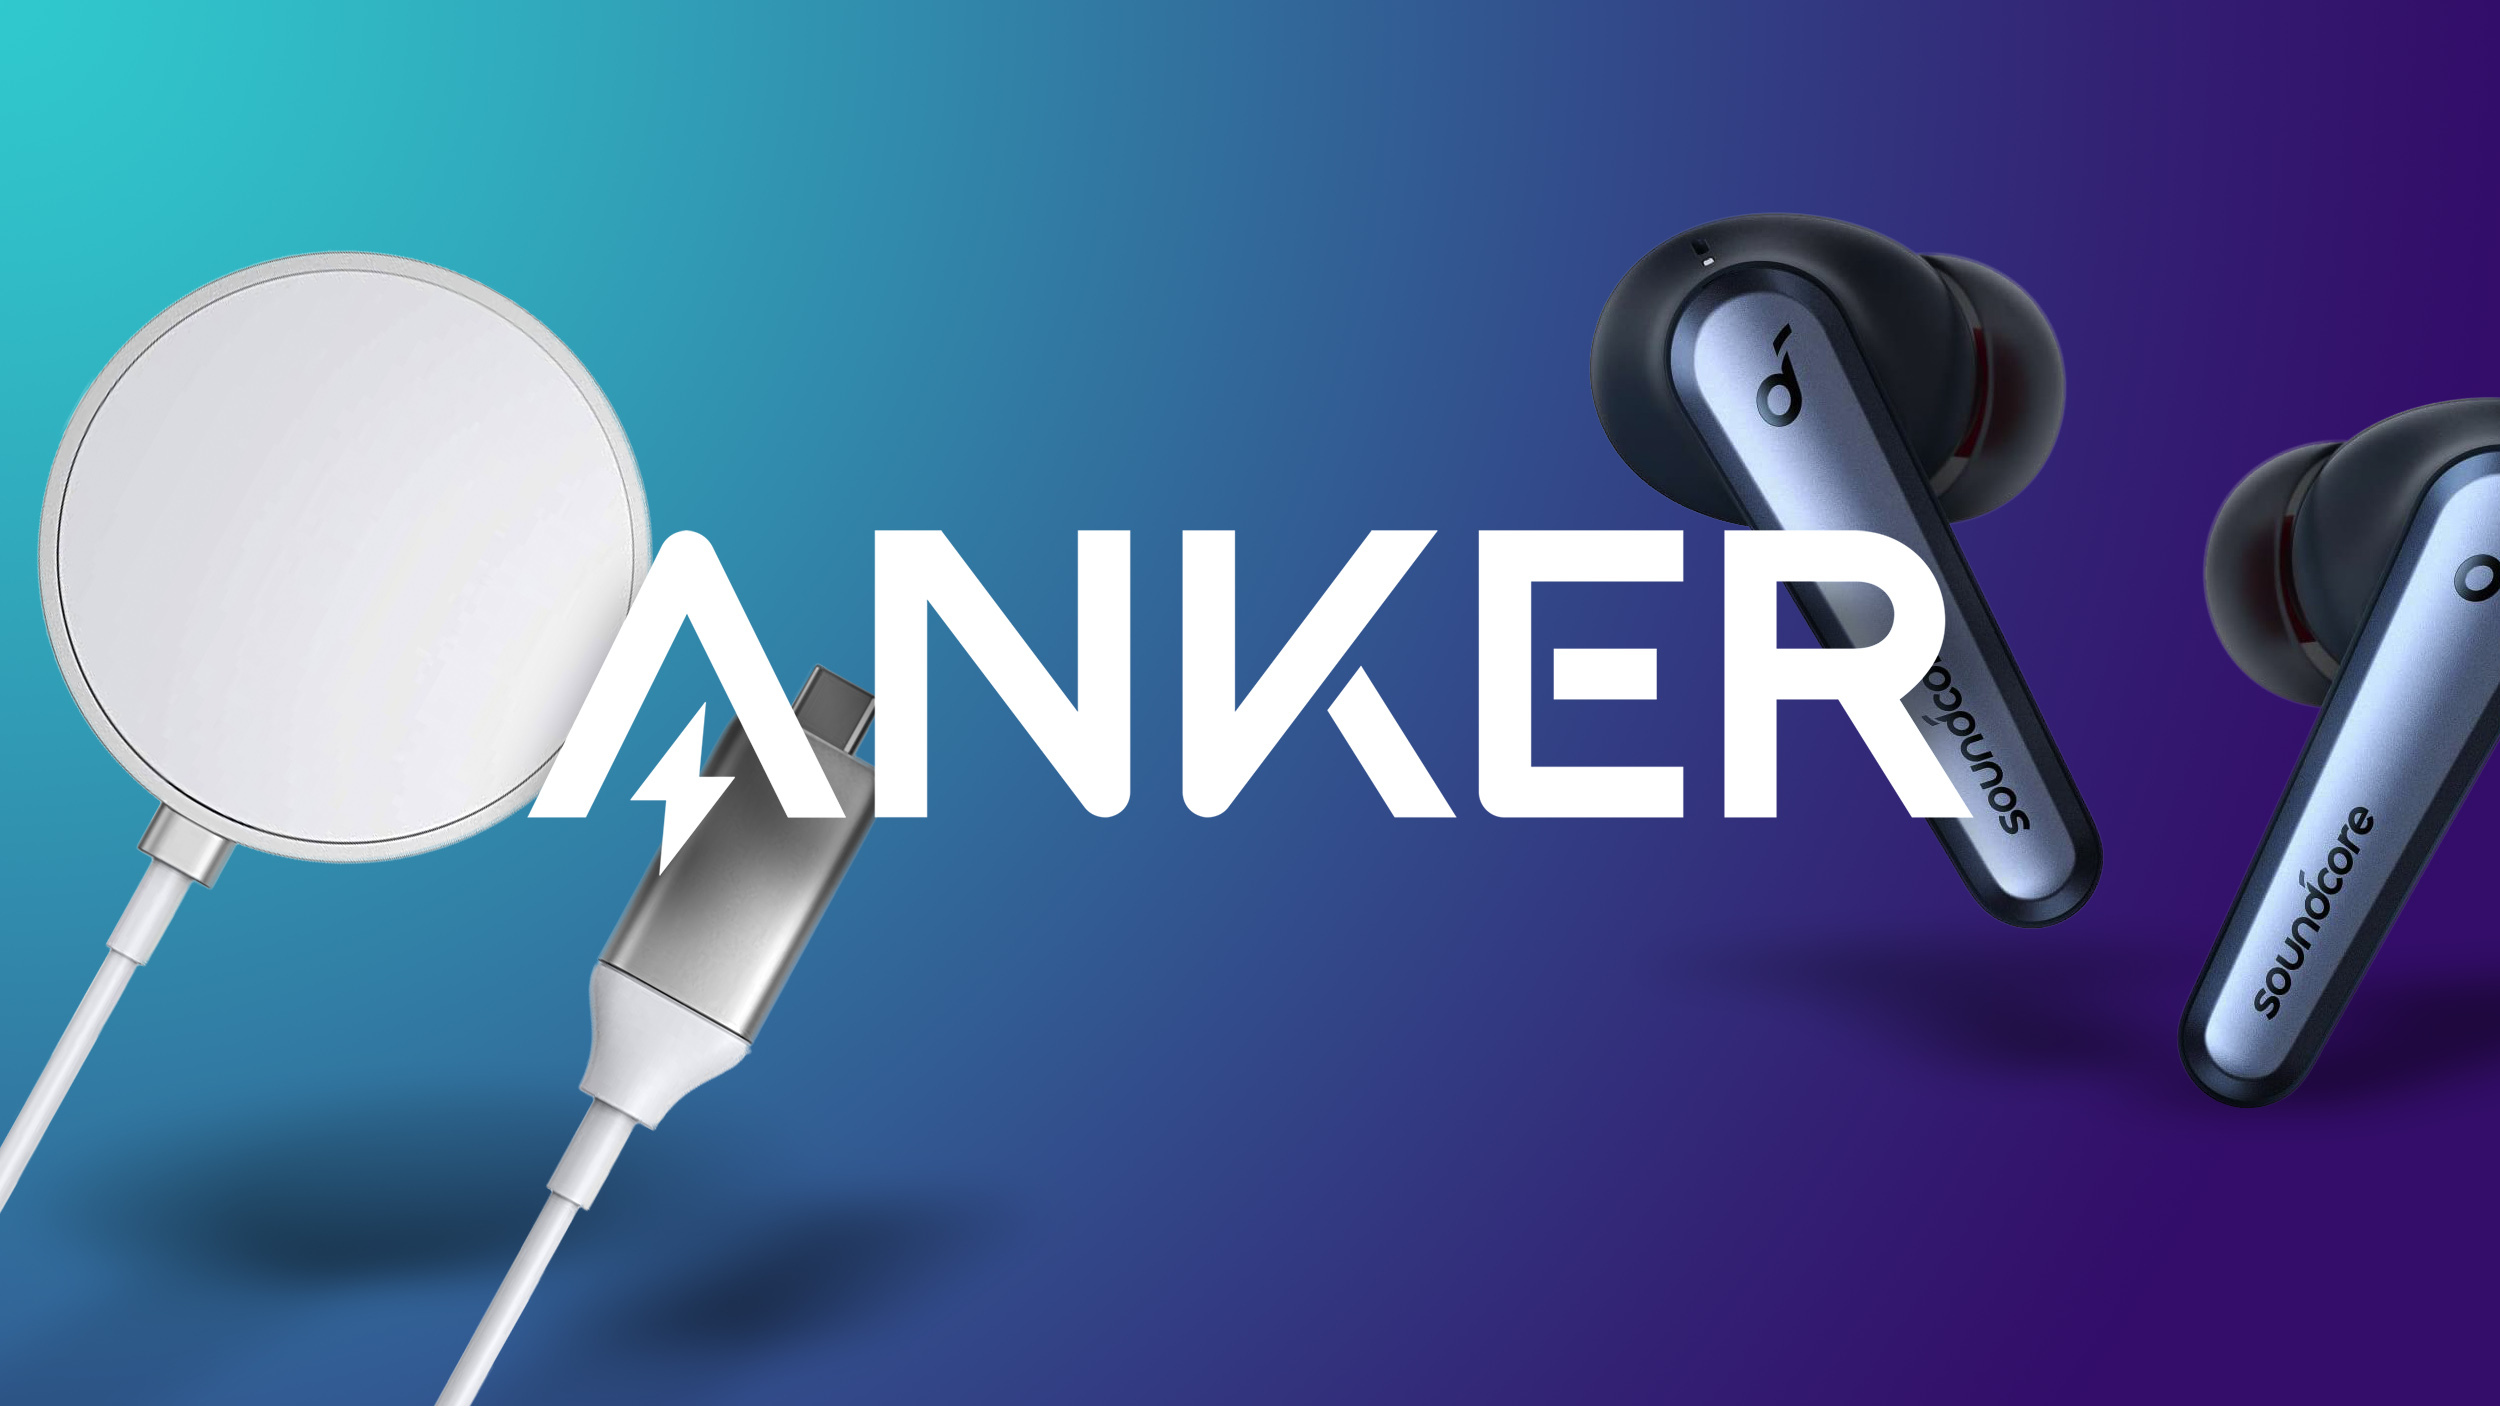 Deals: Anker Discounts New Assortment of Charging, Audio, and Smart Home Accessories